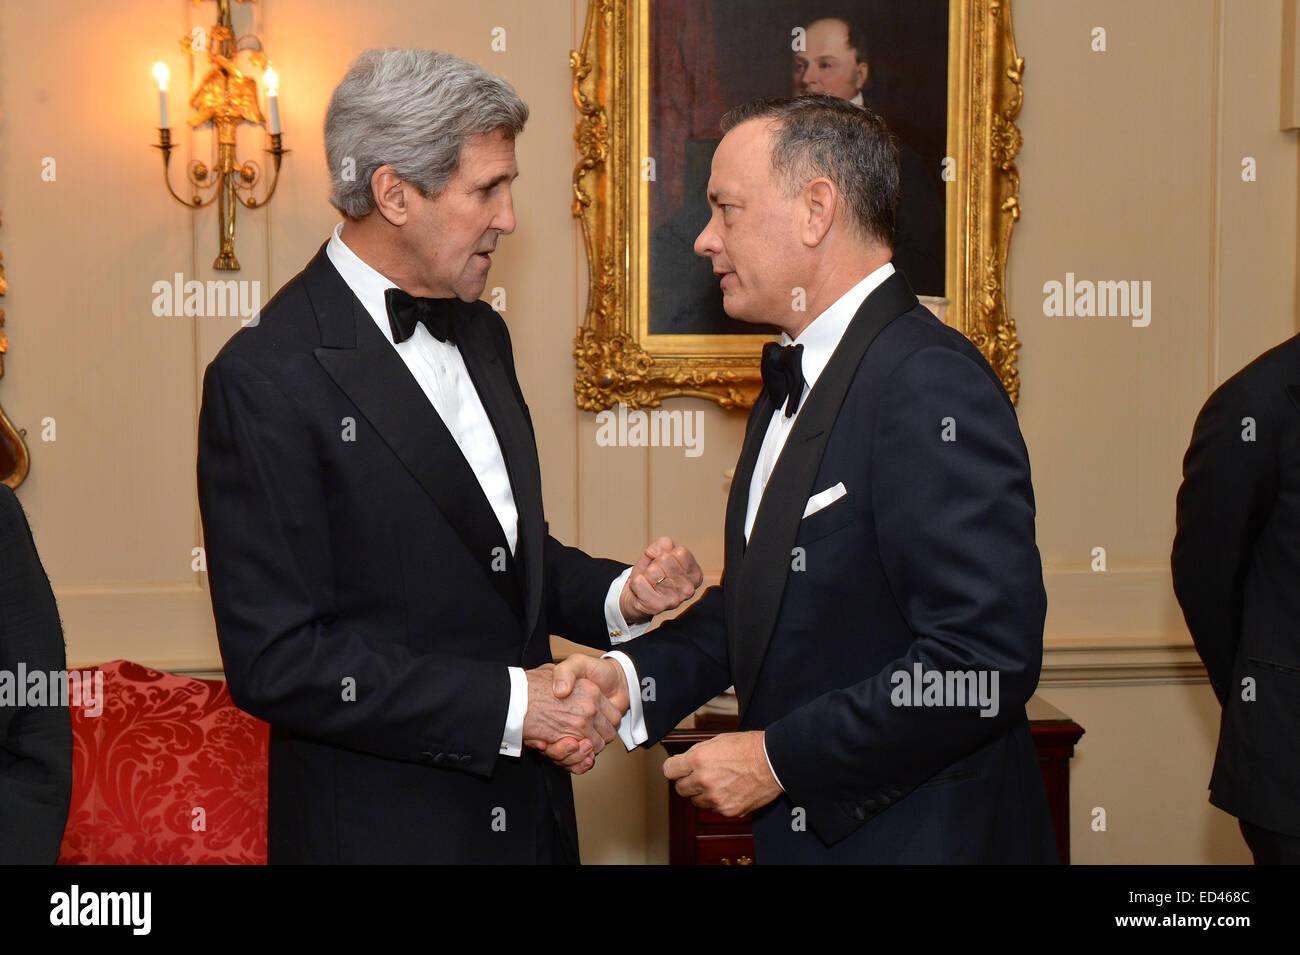 U.S. Secretary of State John Kerry chats with 2014 Kennedy Center Honoree Tom Hanks before a dinner he hosted in - Stock Image